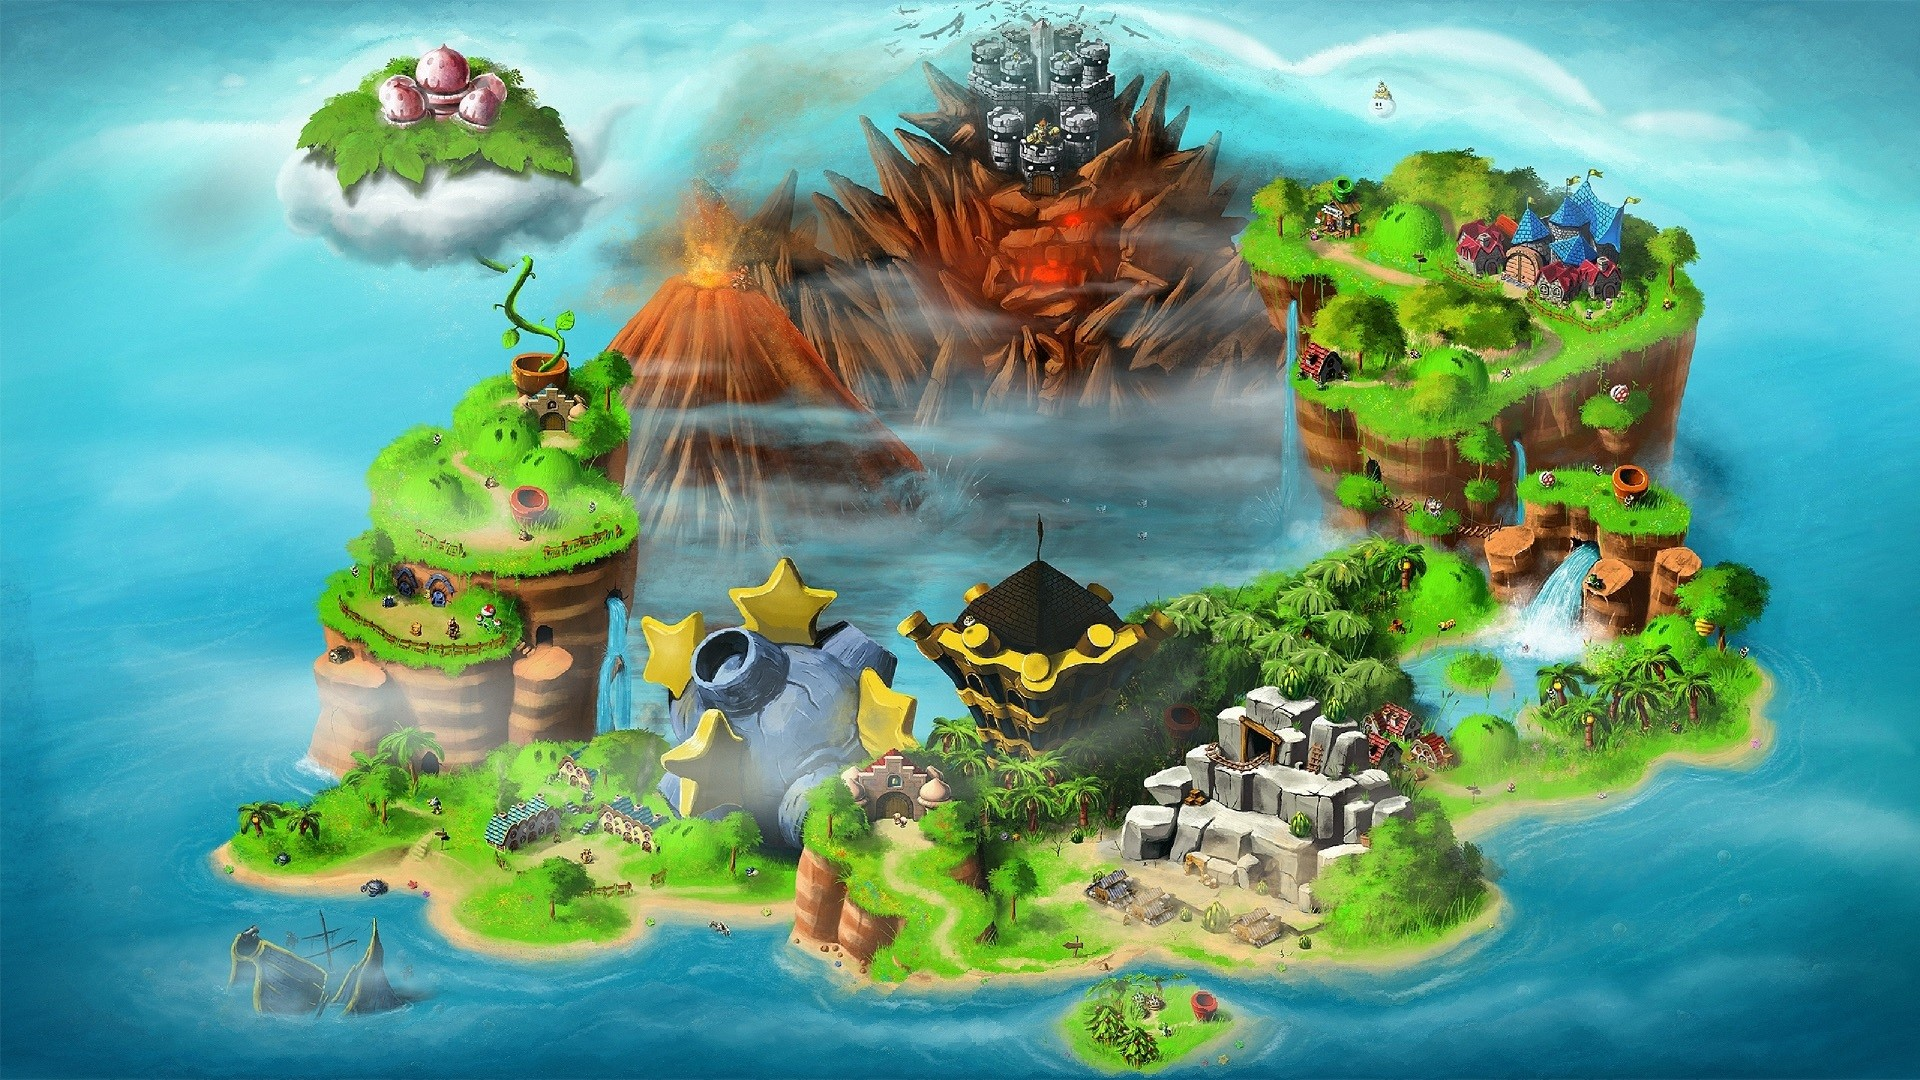 6 Super Mario Rpg: Legend Of The Seven Stars HD Wallpapers | Backgrounds –  Wallpaper Abyss